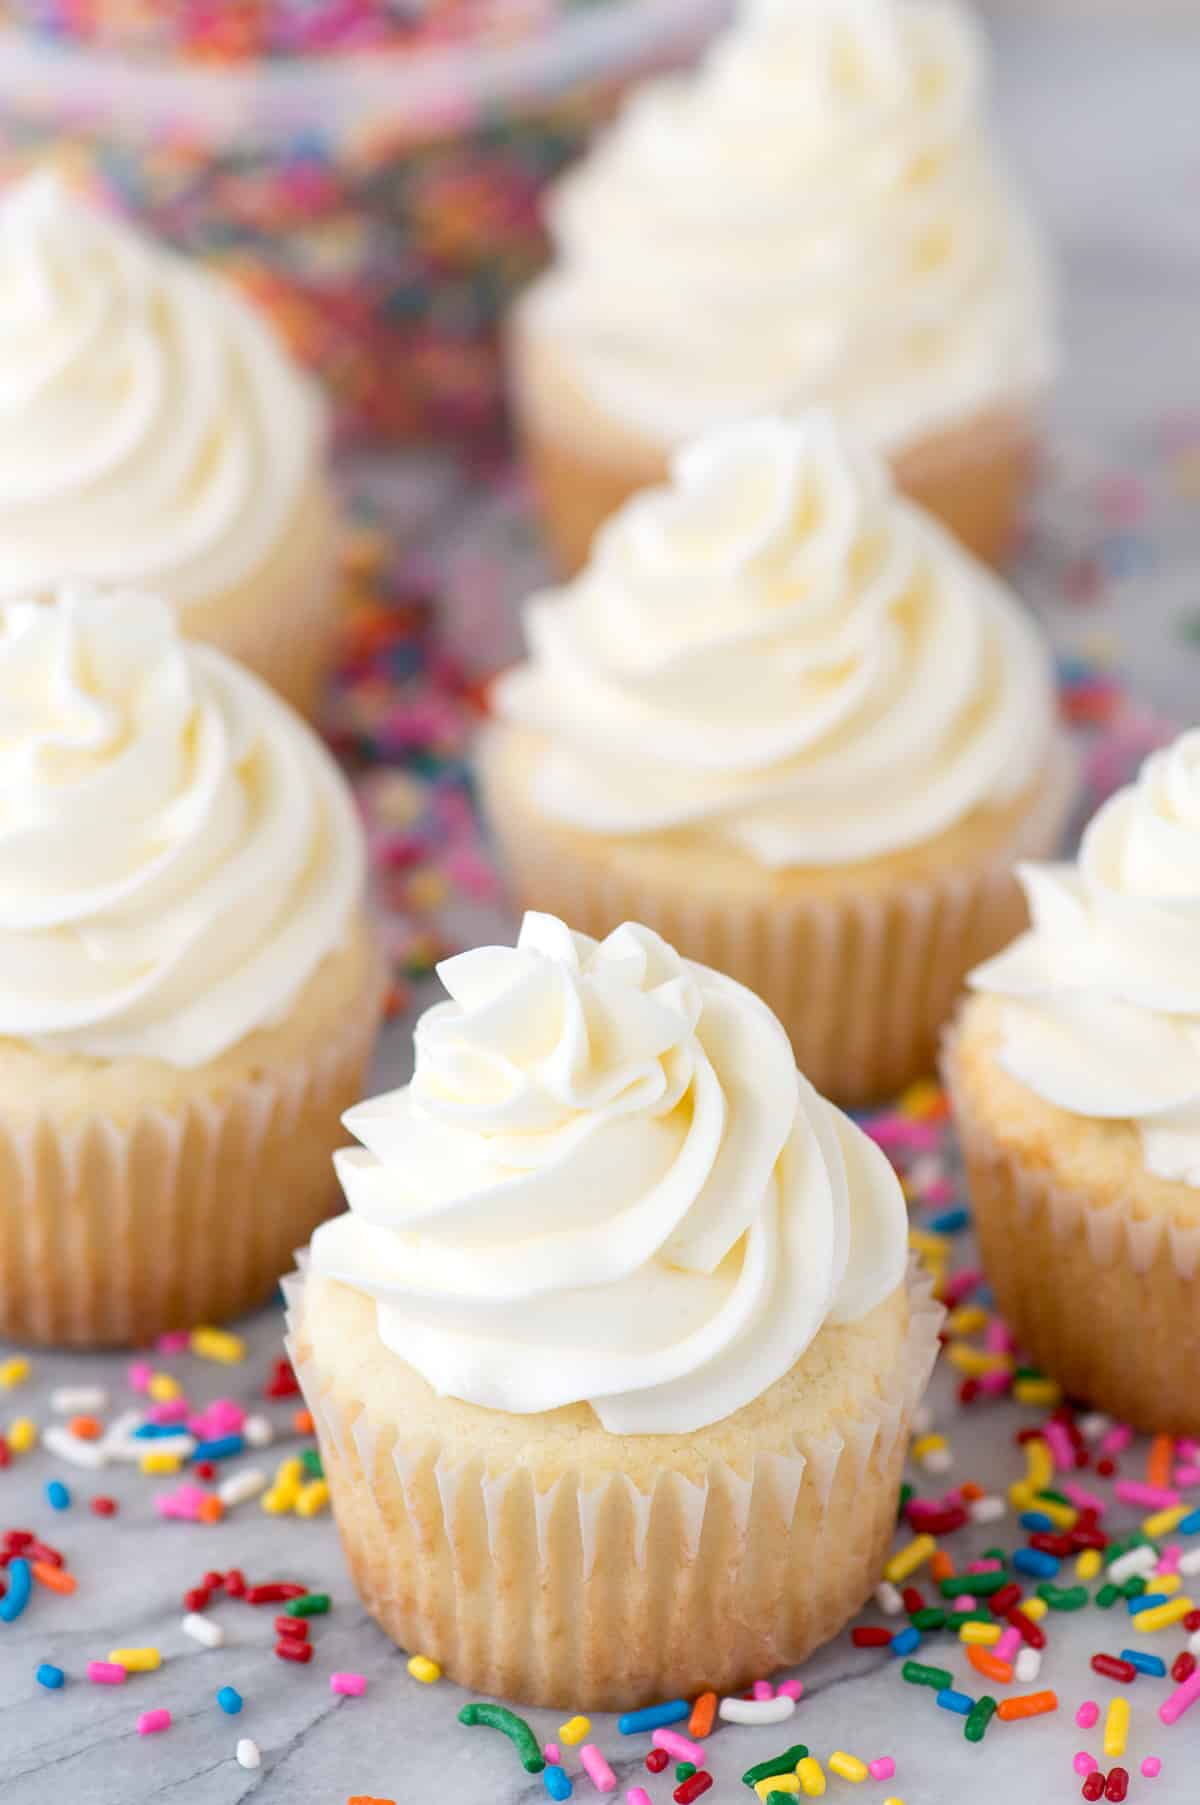 vanilla cupcakes with white frosting on marble background with sprinkles on the marble